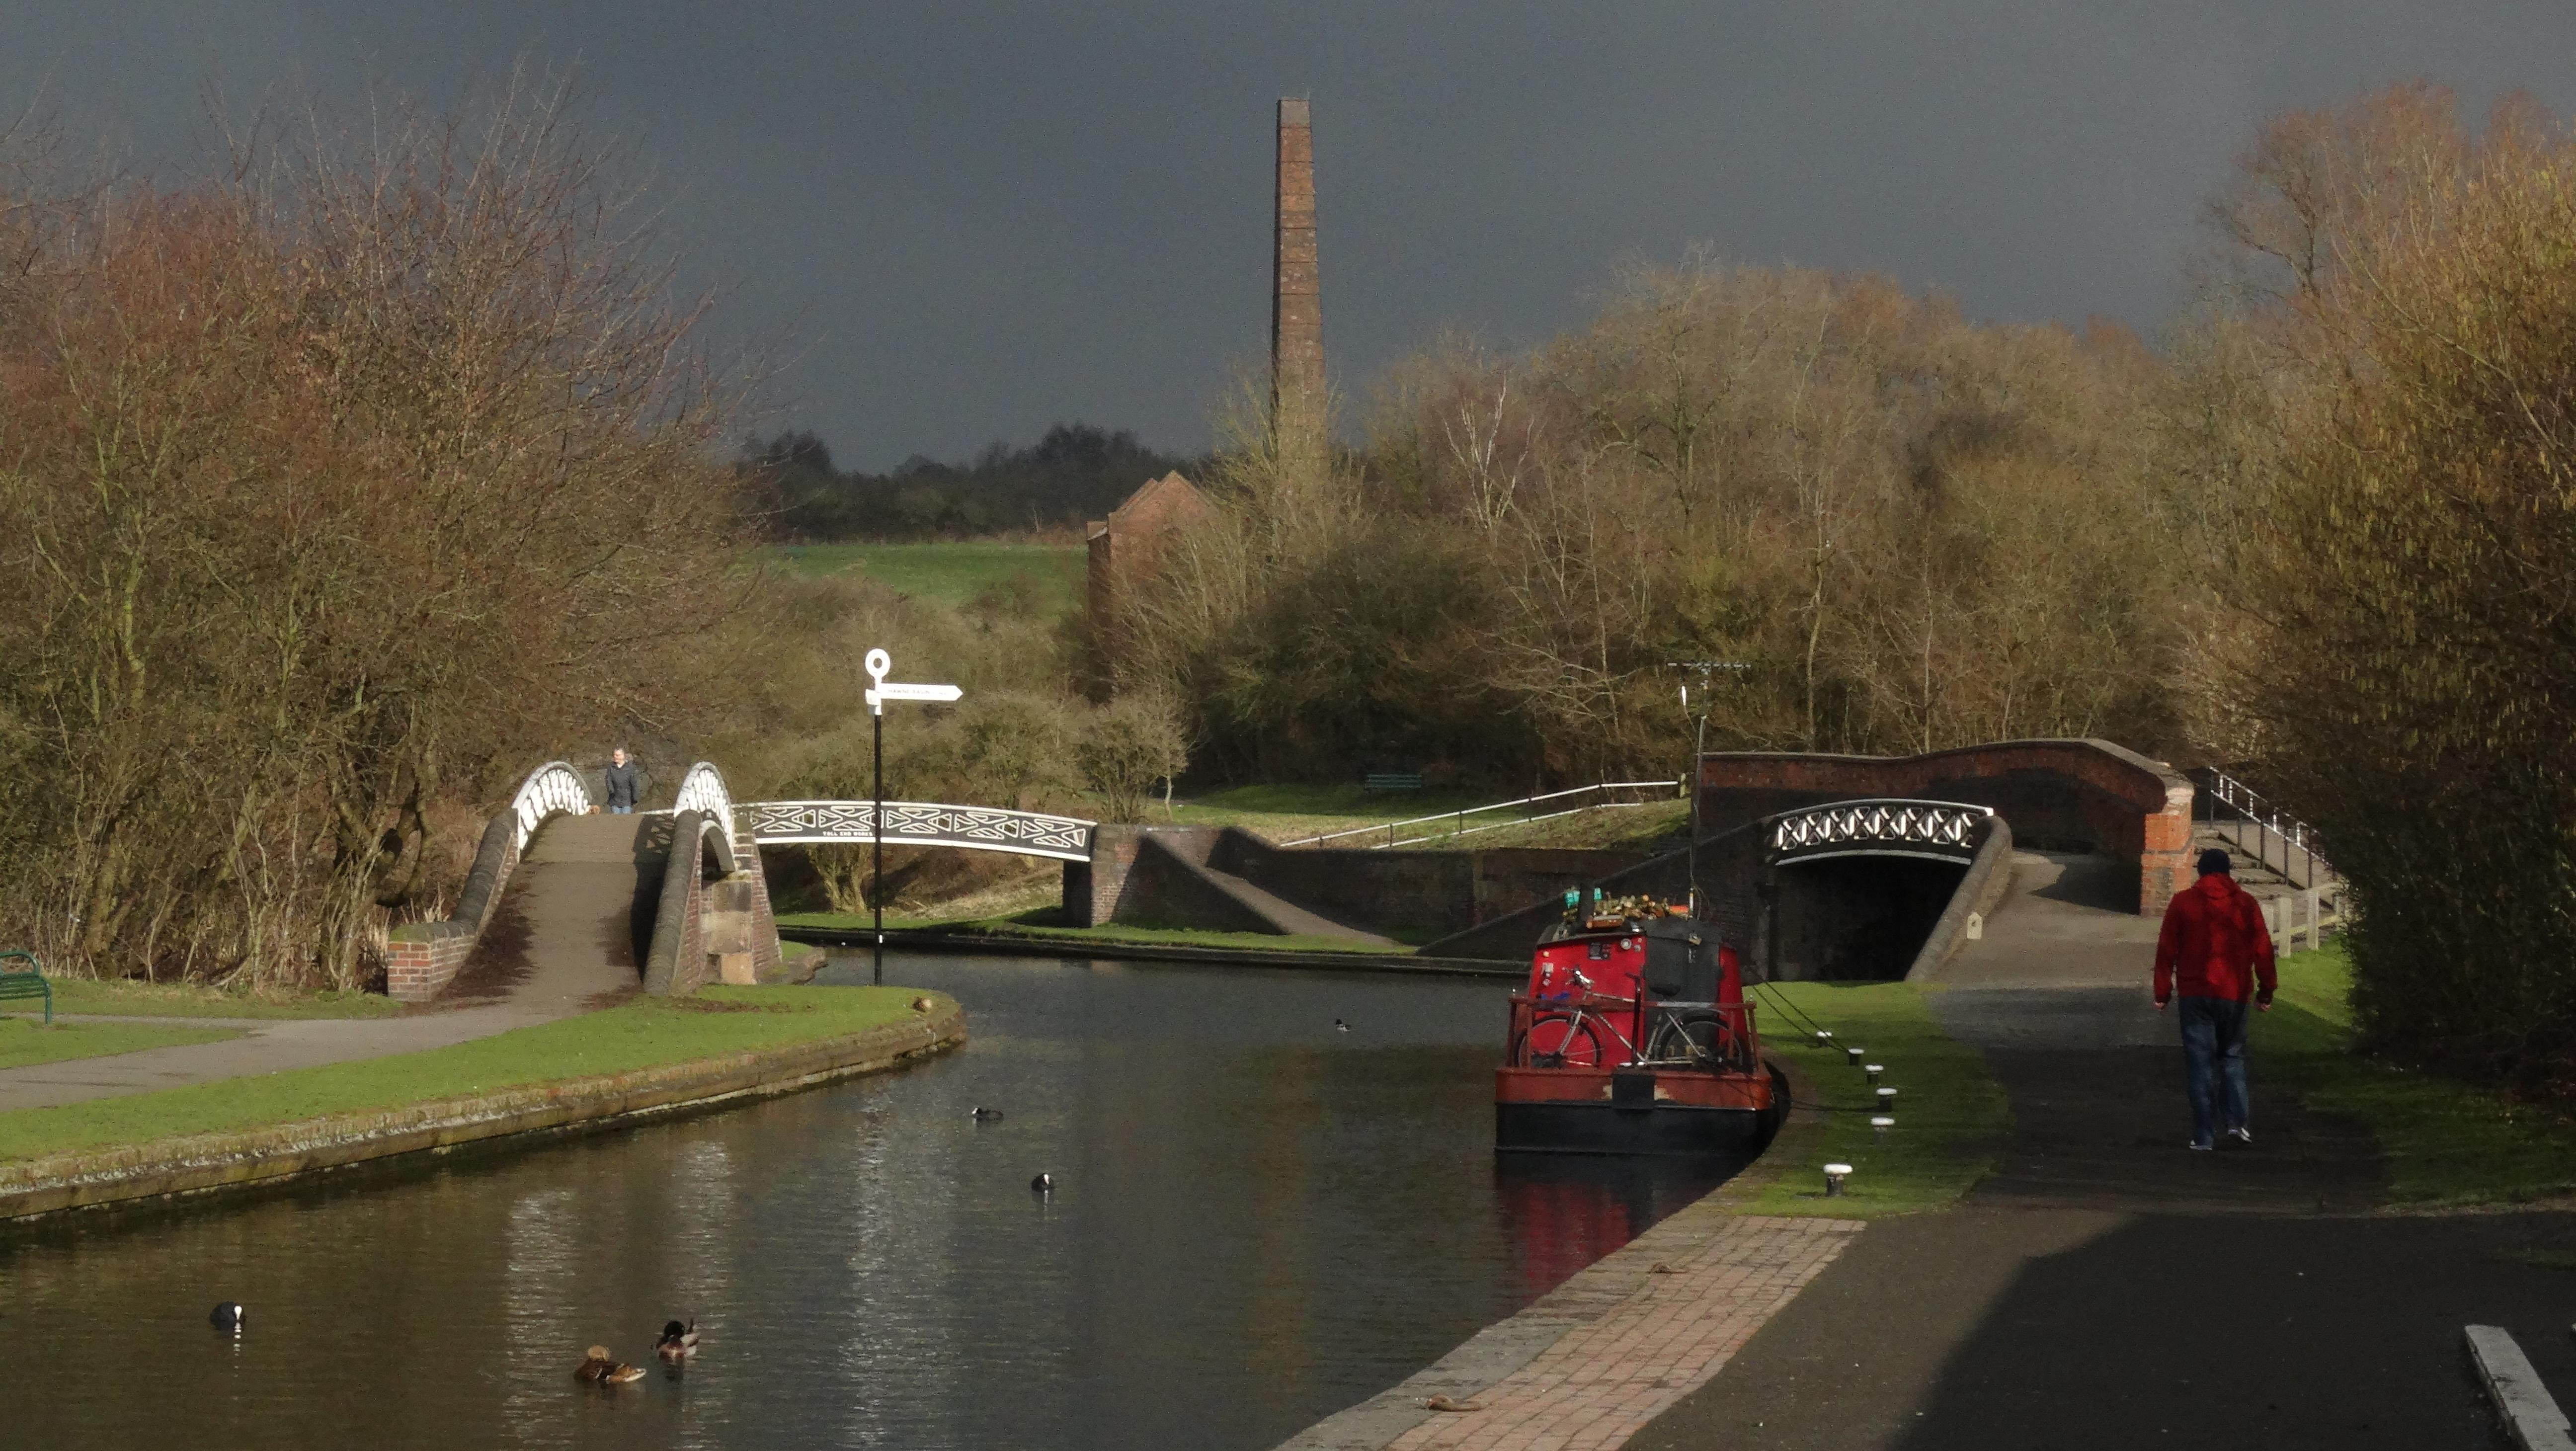 17-059-100217-junction-of-dudley-no2-canal-oldbury-no2-canal-at-windmill-end